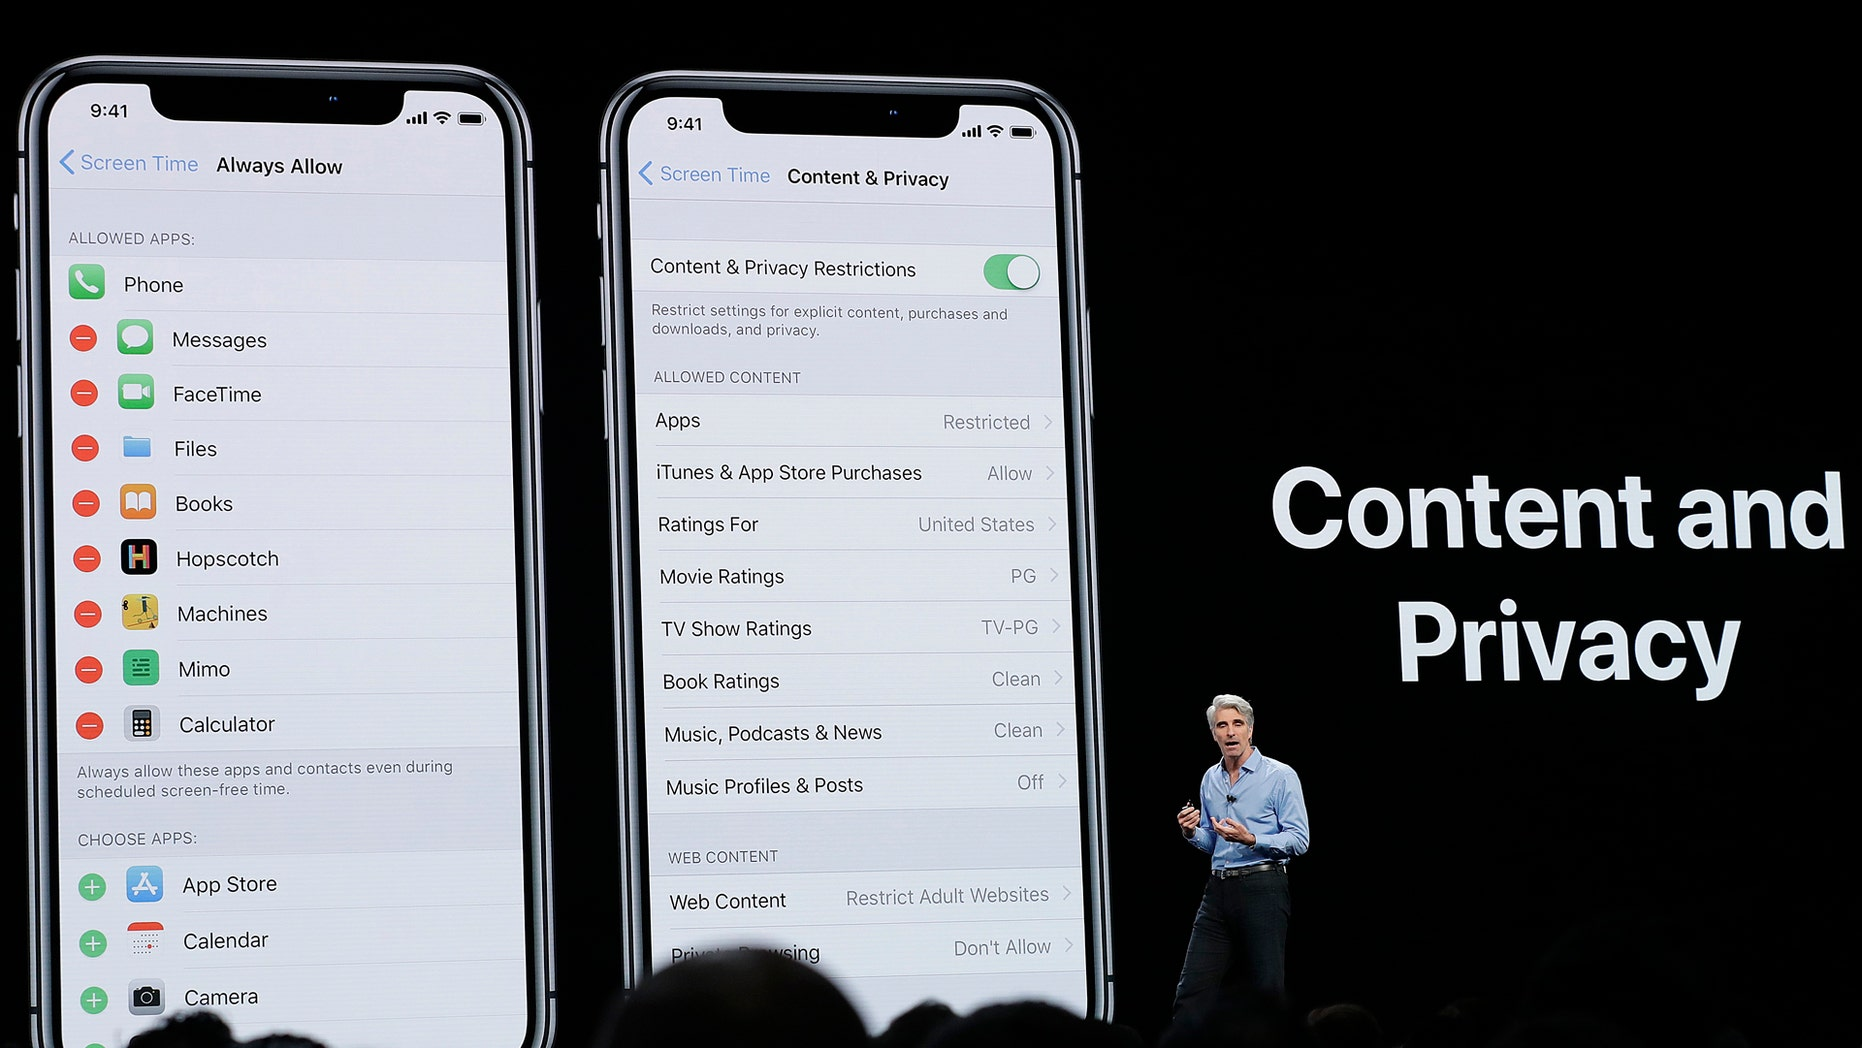 Craig Federighi, Apple's senior vice president of Software Engineering, speaks about content and privacy during an announcement of new products at the Apple Worldwide Developers Conference Monday, June 4, 2018, in San Jose, Calif. (AP Photo/Marcio Jose Sanchez)